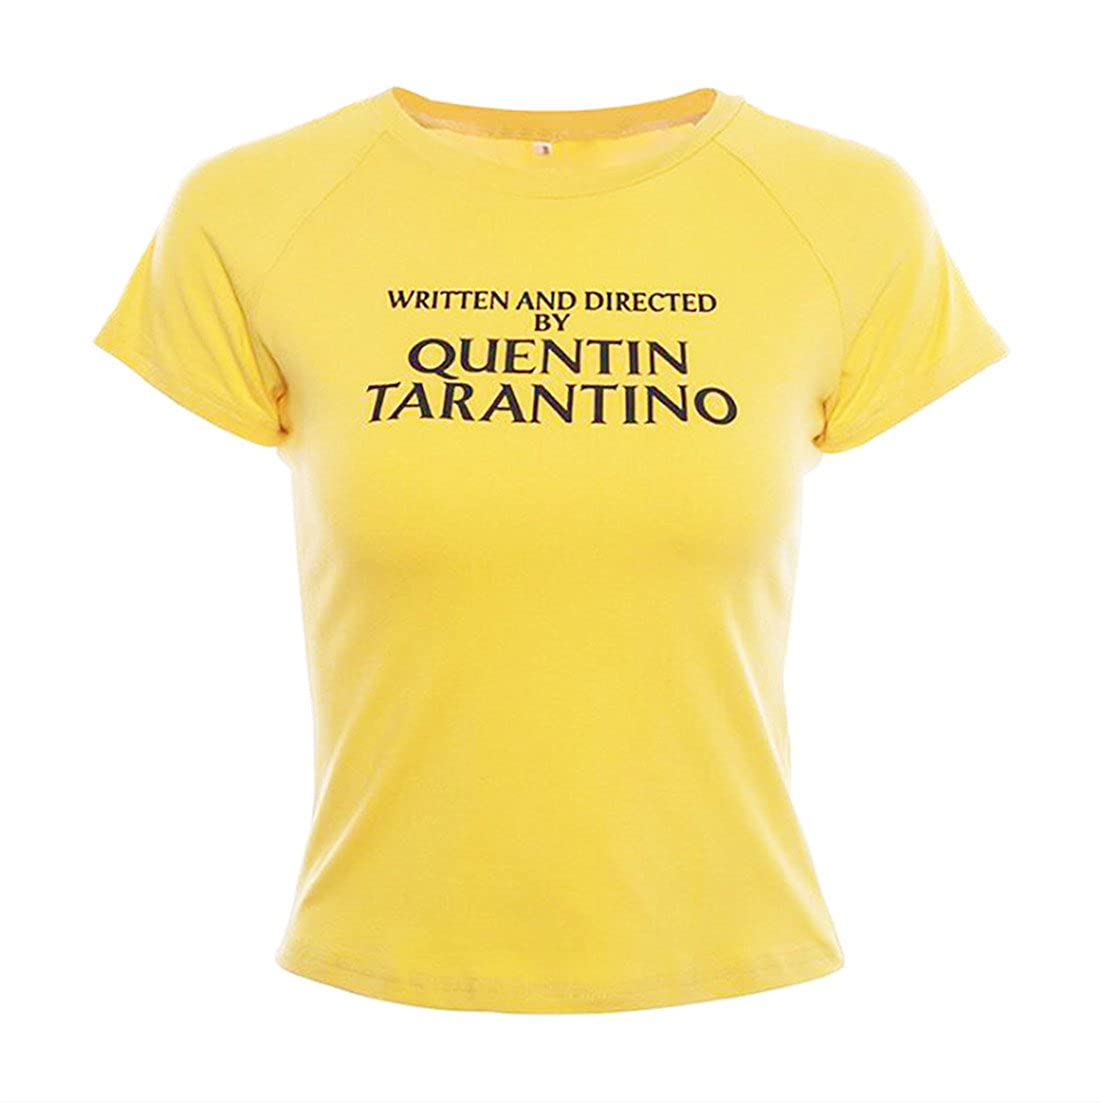 4c7e985fa Amazon.com: Women Summer Tees Written and Directed by Quentin Tarantino  Short Sleeve T Shirts: Clothing